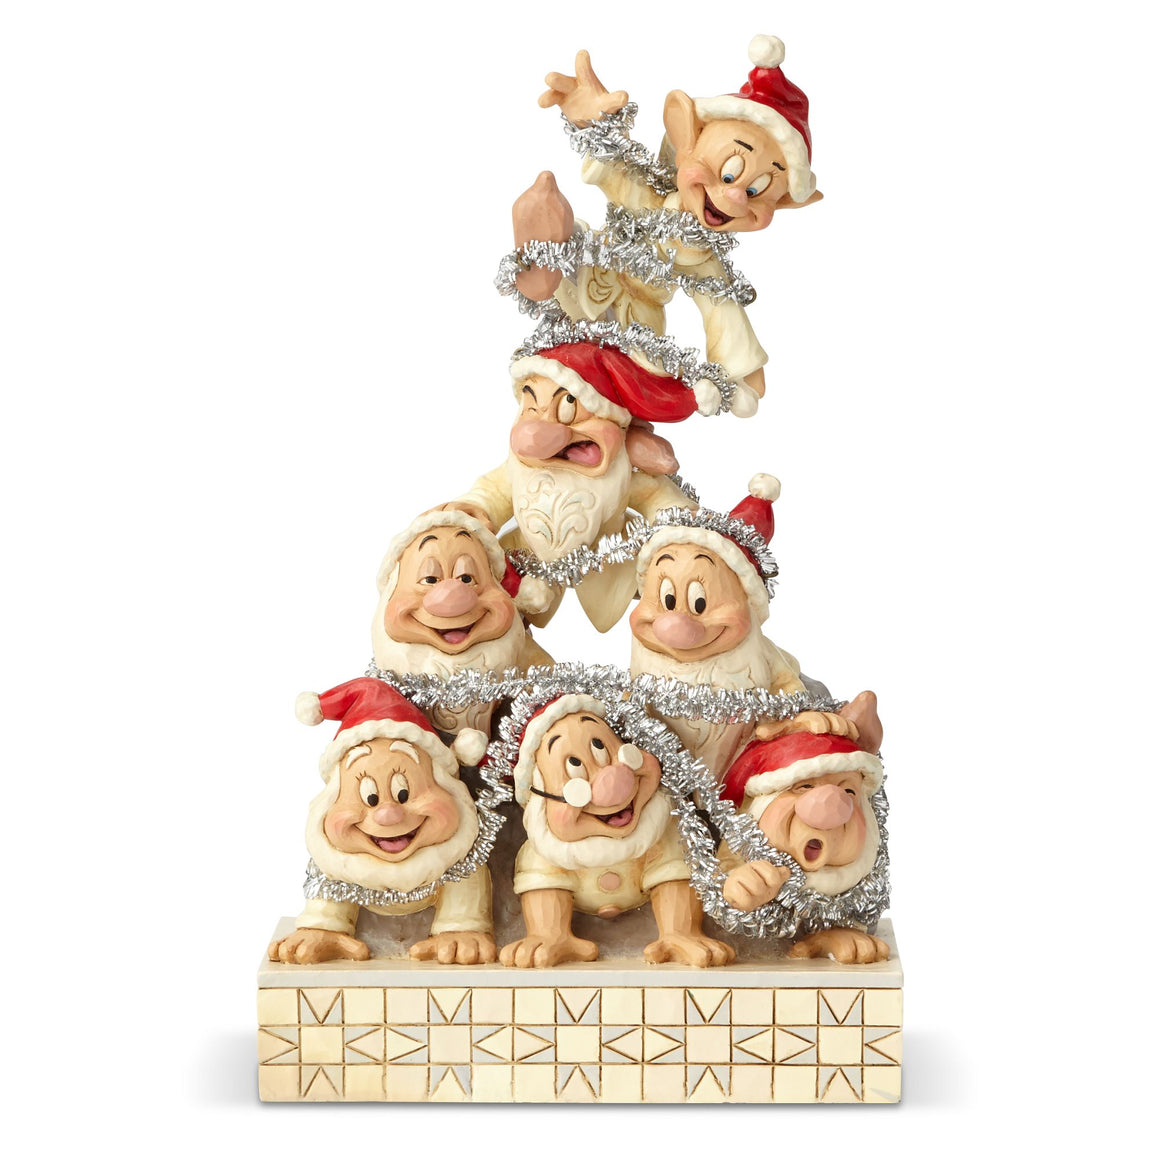 Disney Traditions by Jim Shore Precarious Pyramid - Seven Dwarfs Figurine